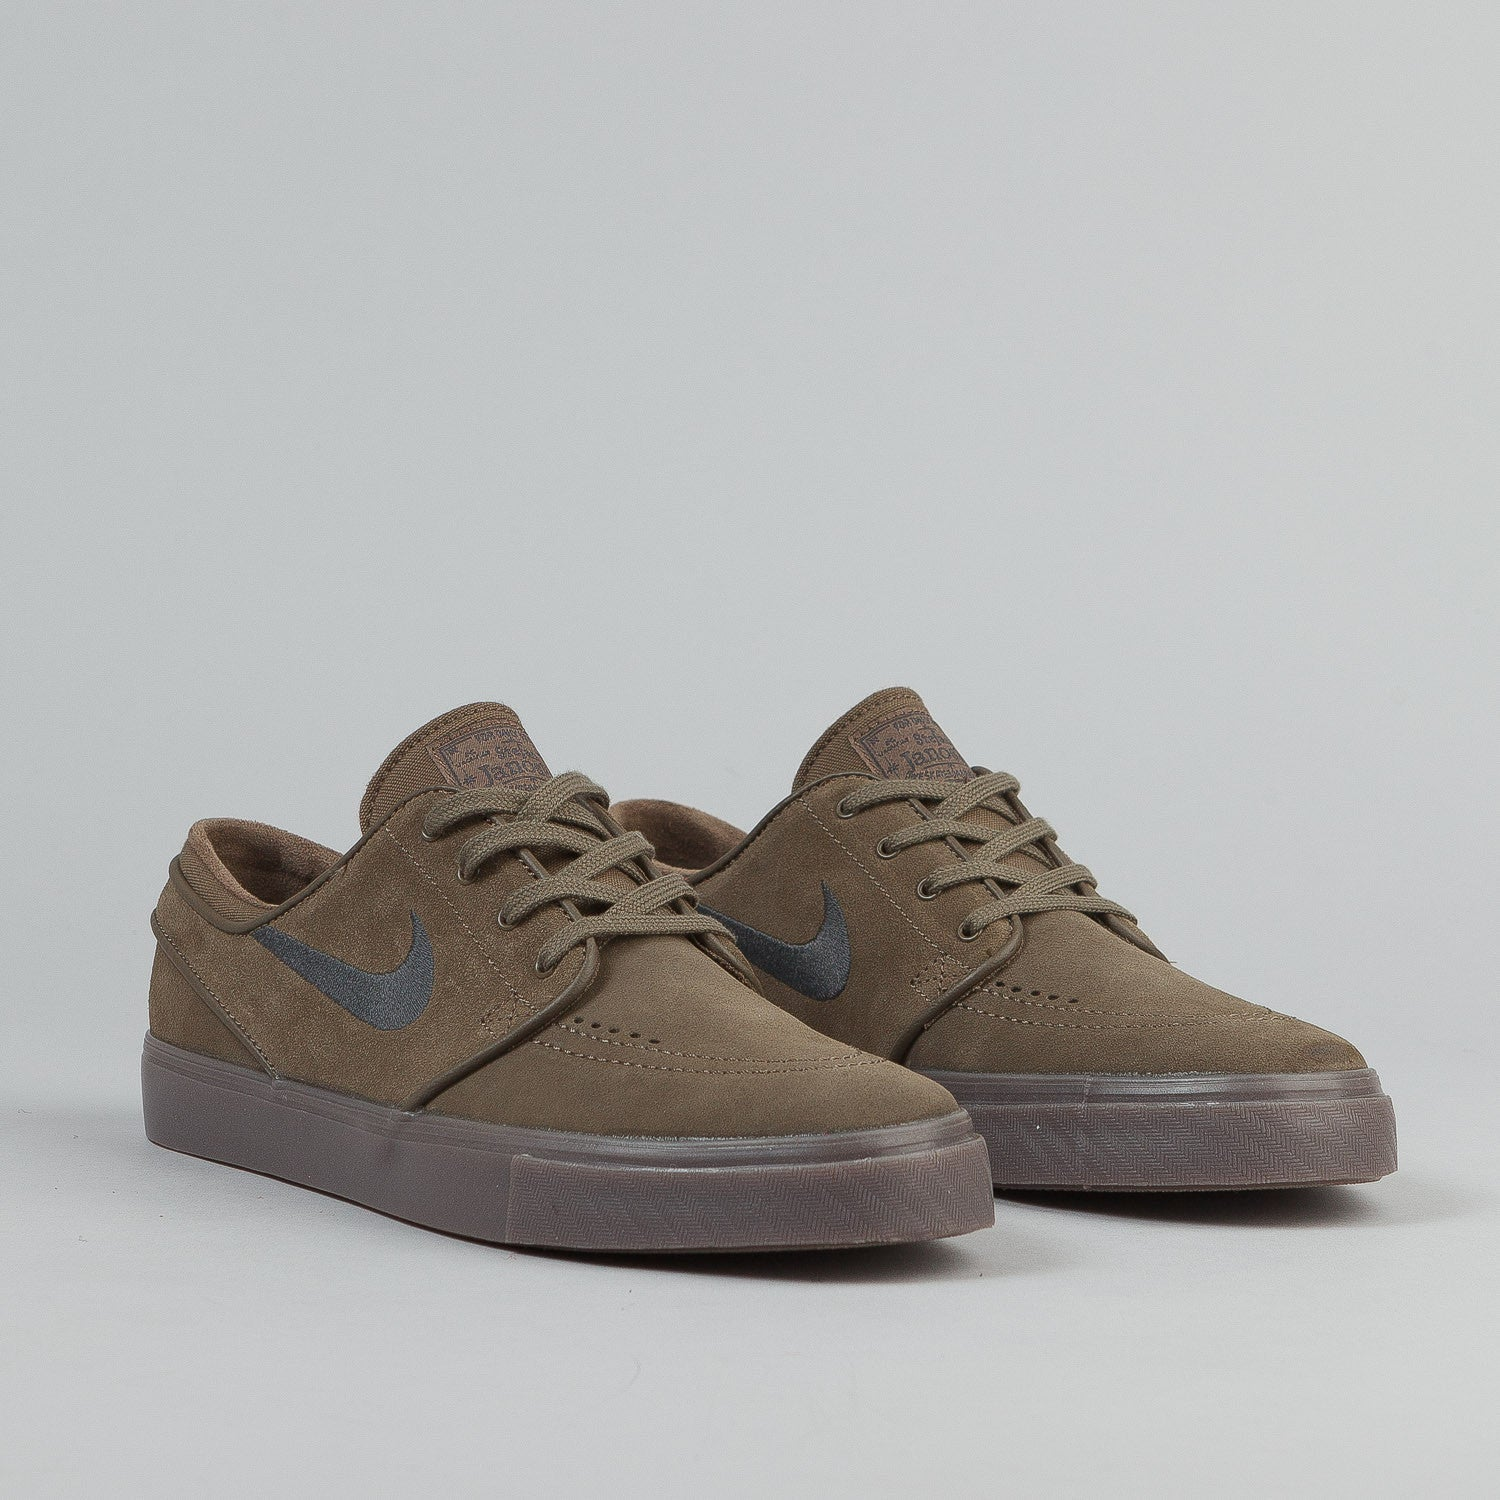 Nike SB Stefan Janoski Shoes - Fieldstone Iron / Anthracite / White / Gum